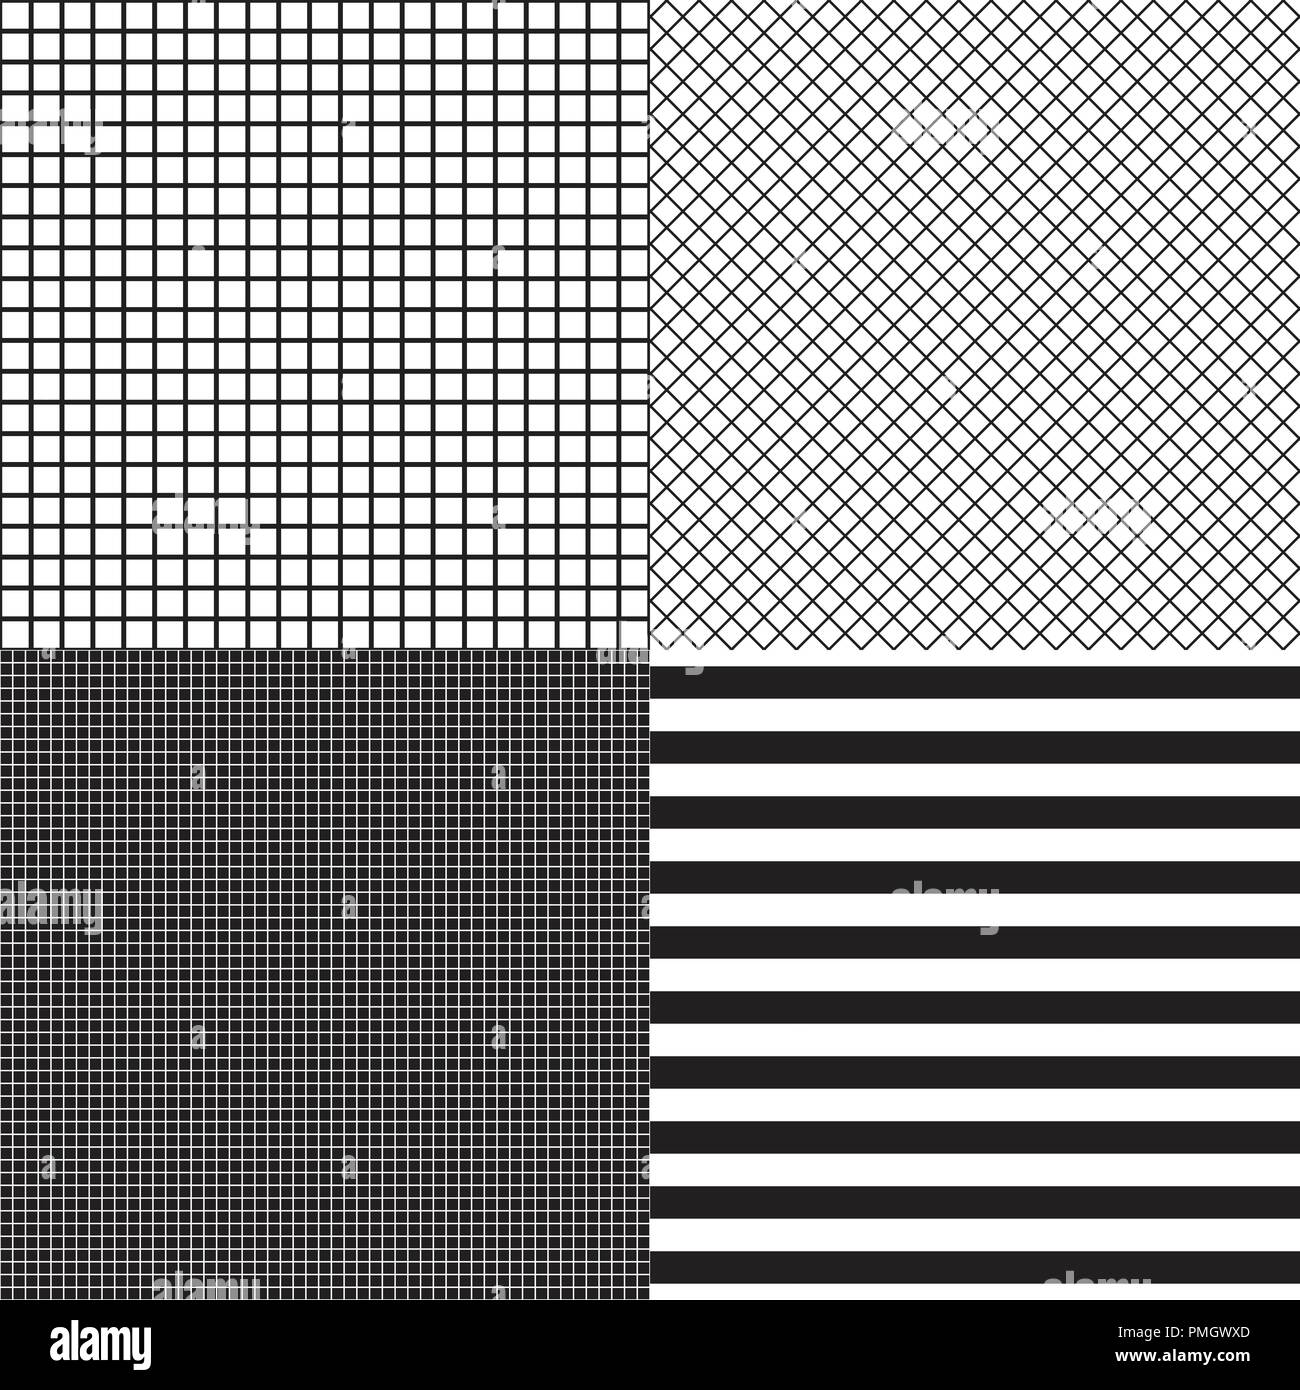 3cde98263 Set of striped and grid cells seamless patterns. Black and white colors  Vector fashion background